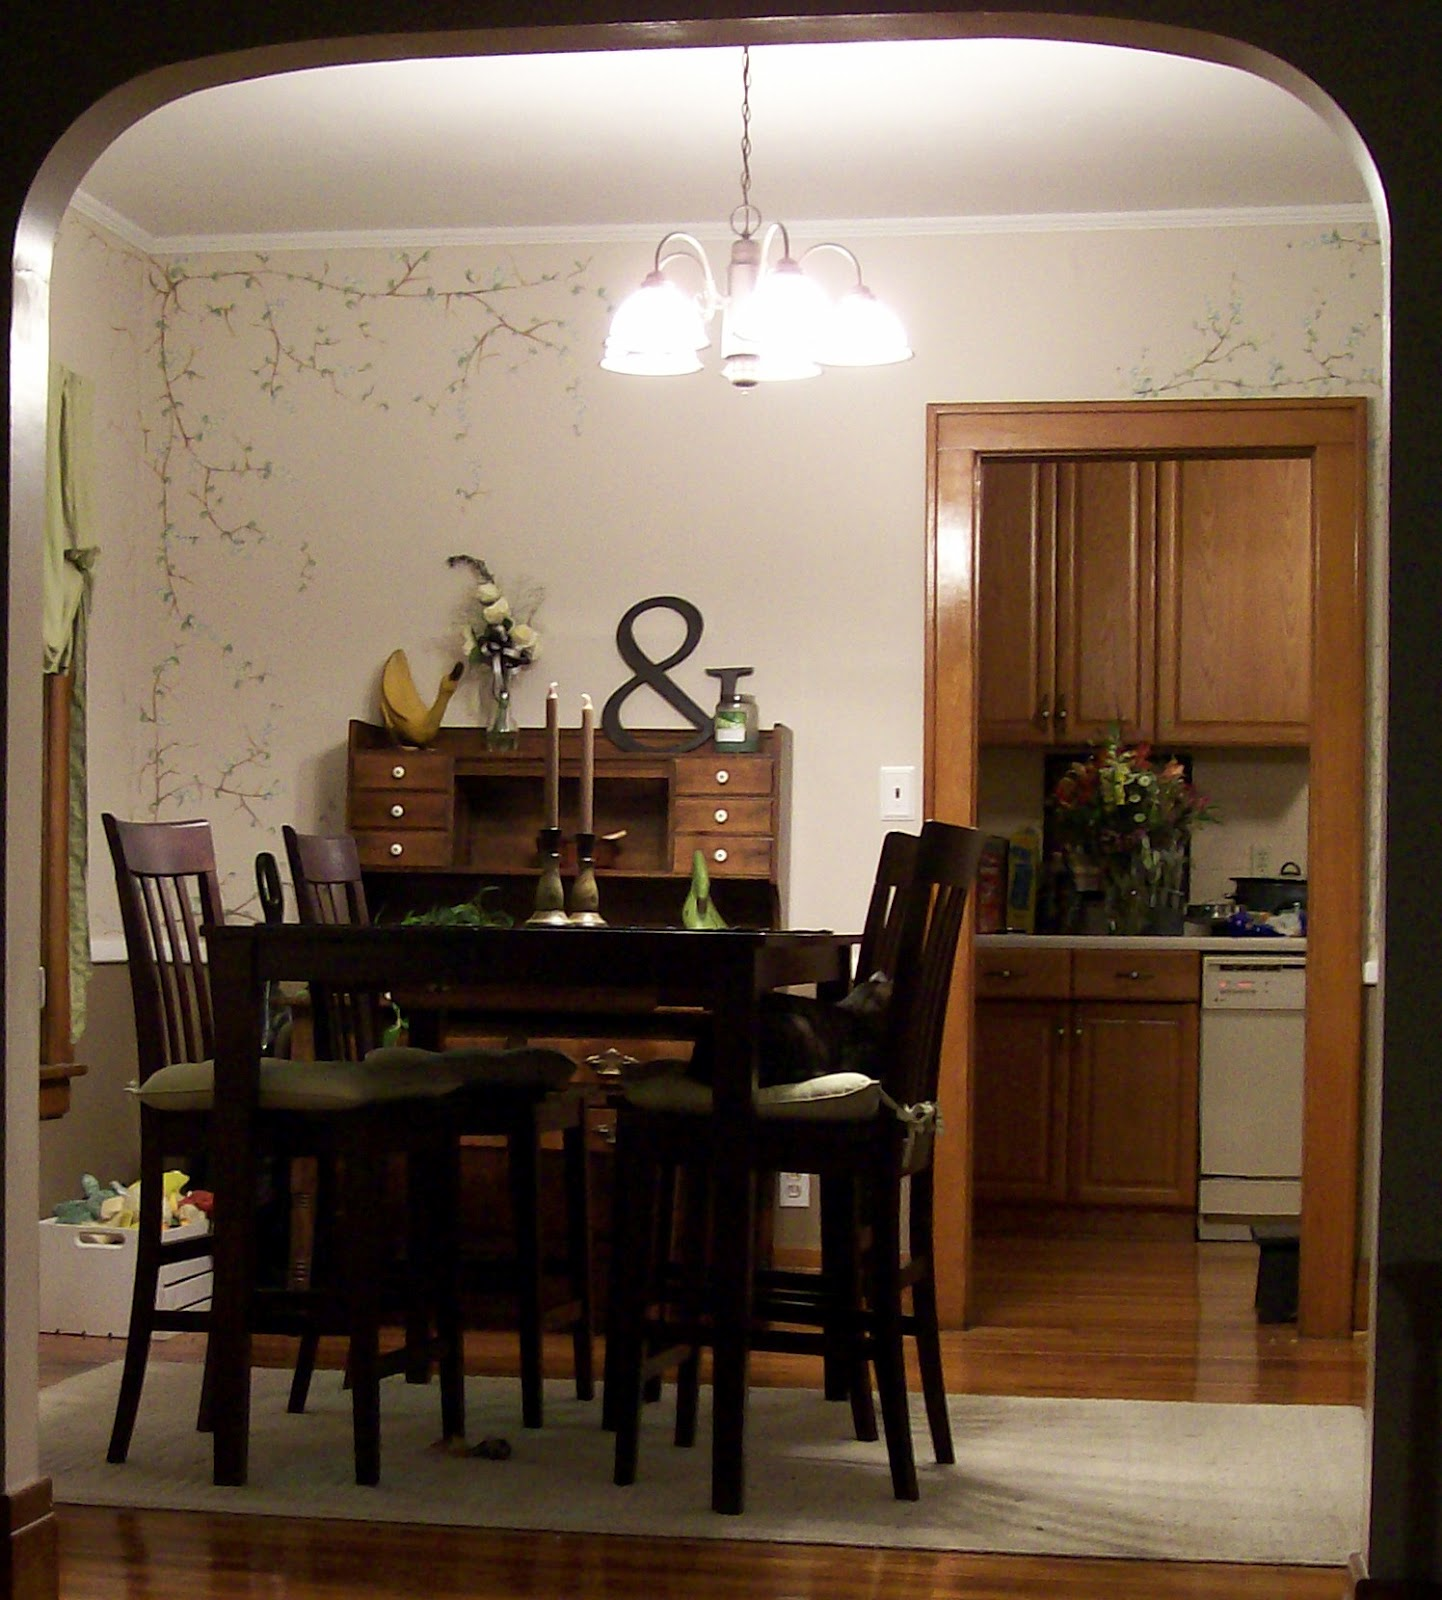 20 Small Dining Room Ideas On A Budget: NikkiMdesign: Small Budget Redesign: Dining Room Redone